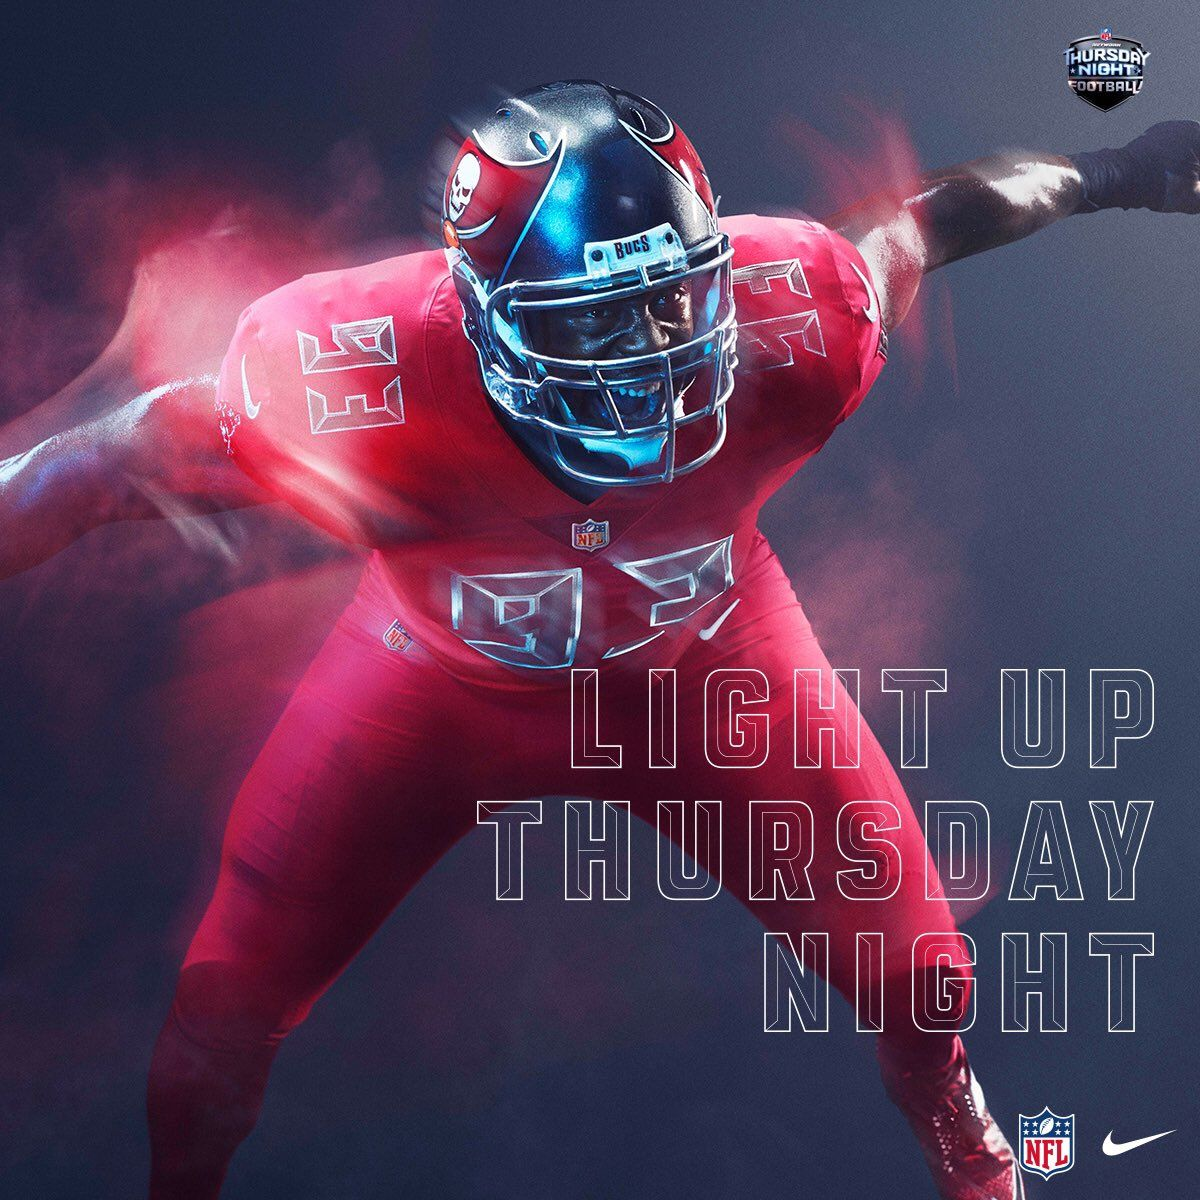 Power Ranking All 32 Nfl Color Rush Uniforms 20 Tampa Bay Buccaneers Nfl Color Rush Uniforms Color Rush Uniforms College Football Uniforms